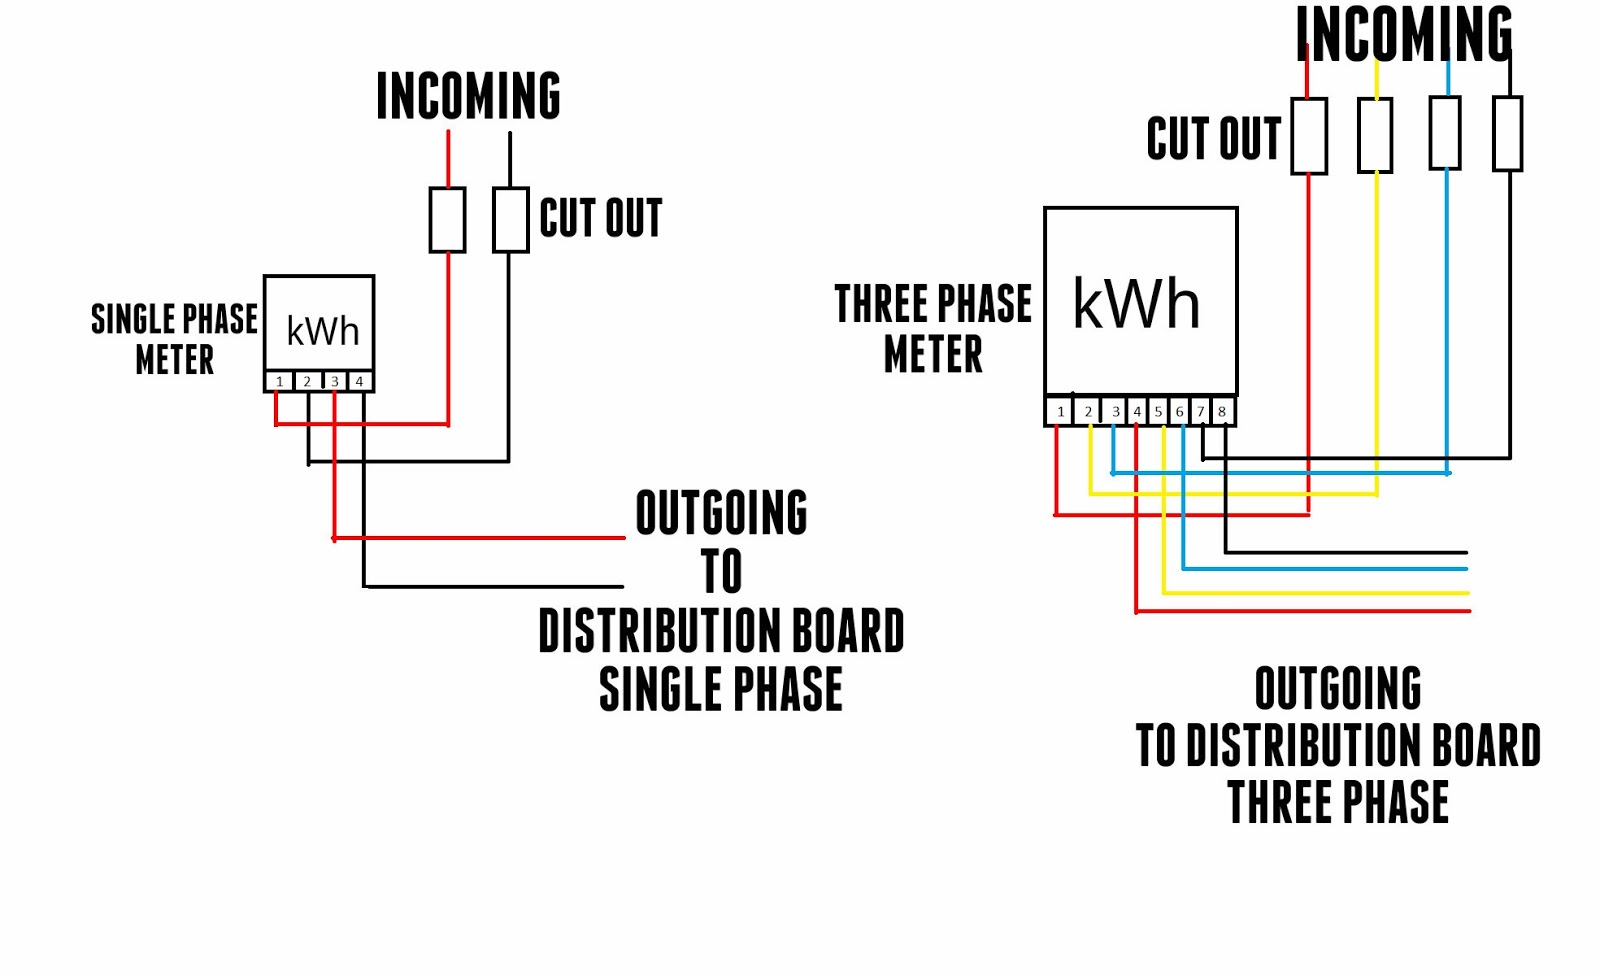 kwh meter wiring diagram 01 nissan frontier radio the world through electricity kilo watt hour